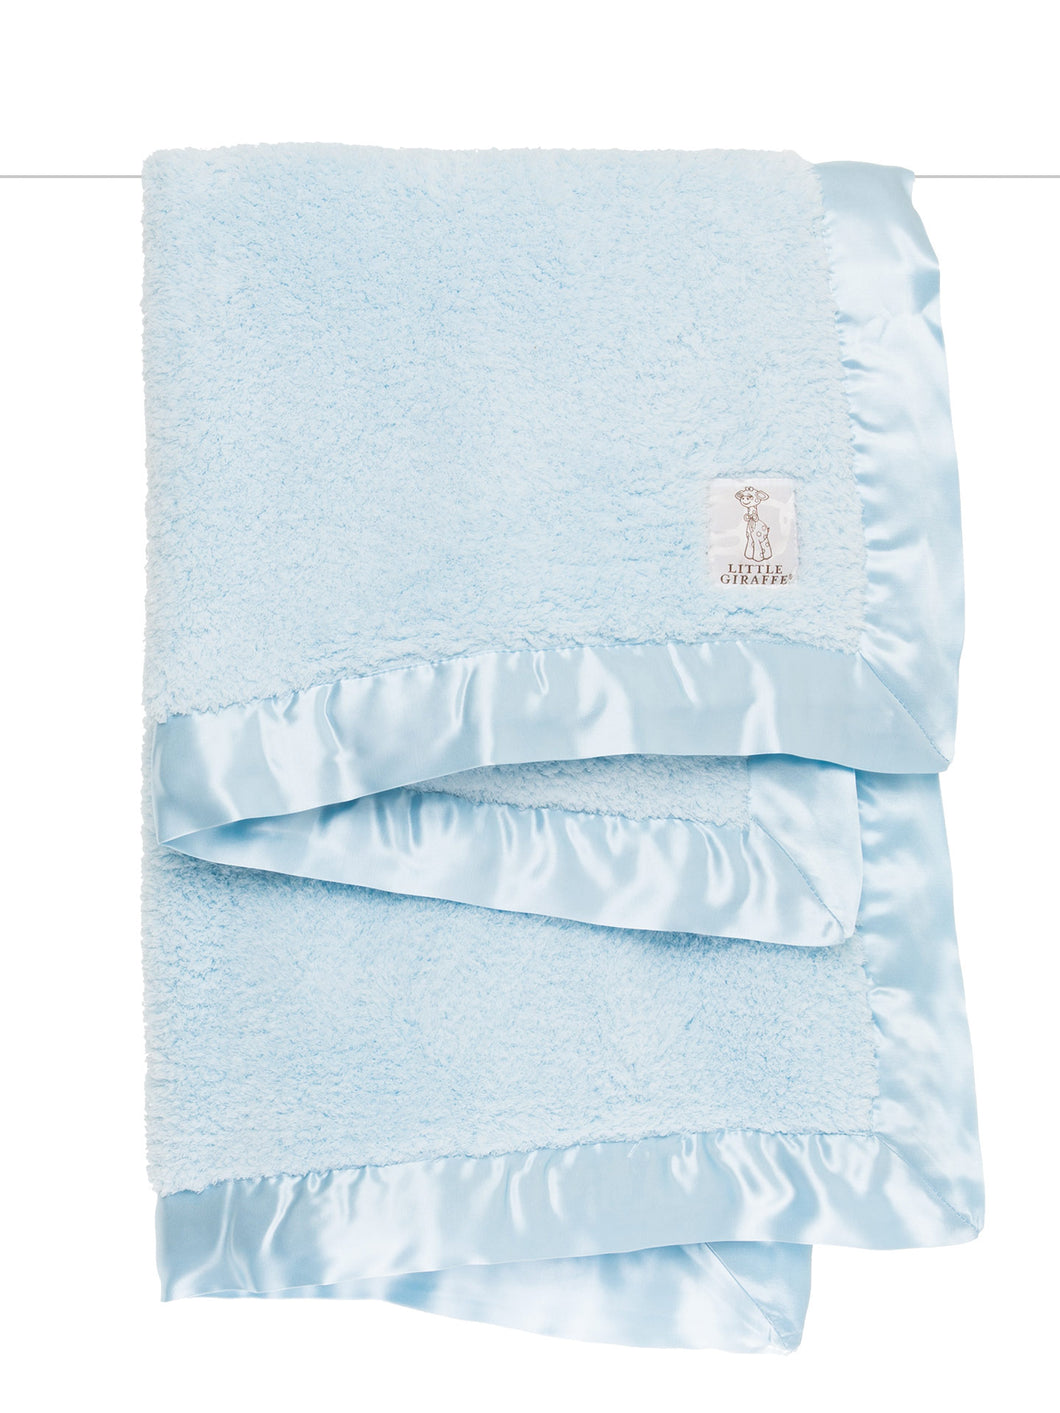 LG Blue Double Sided Chenille Blanket